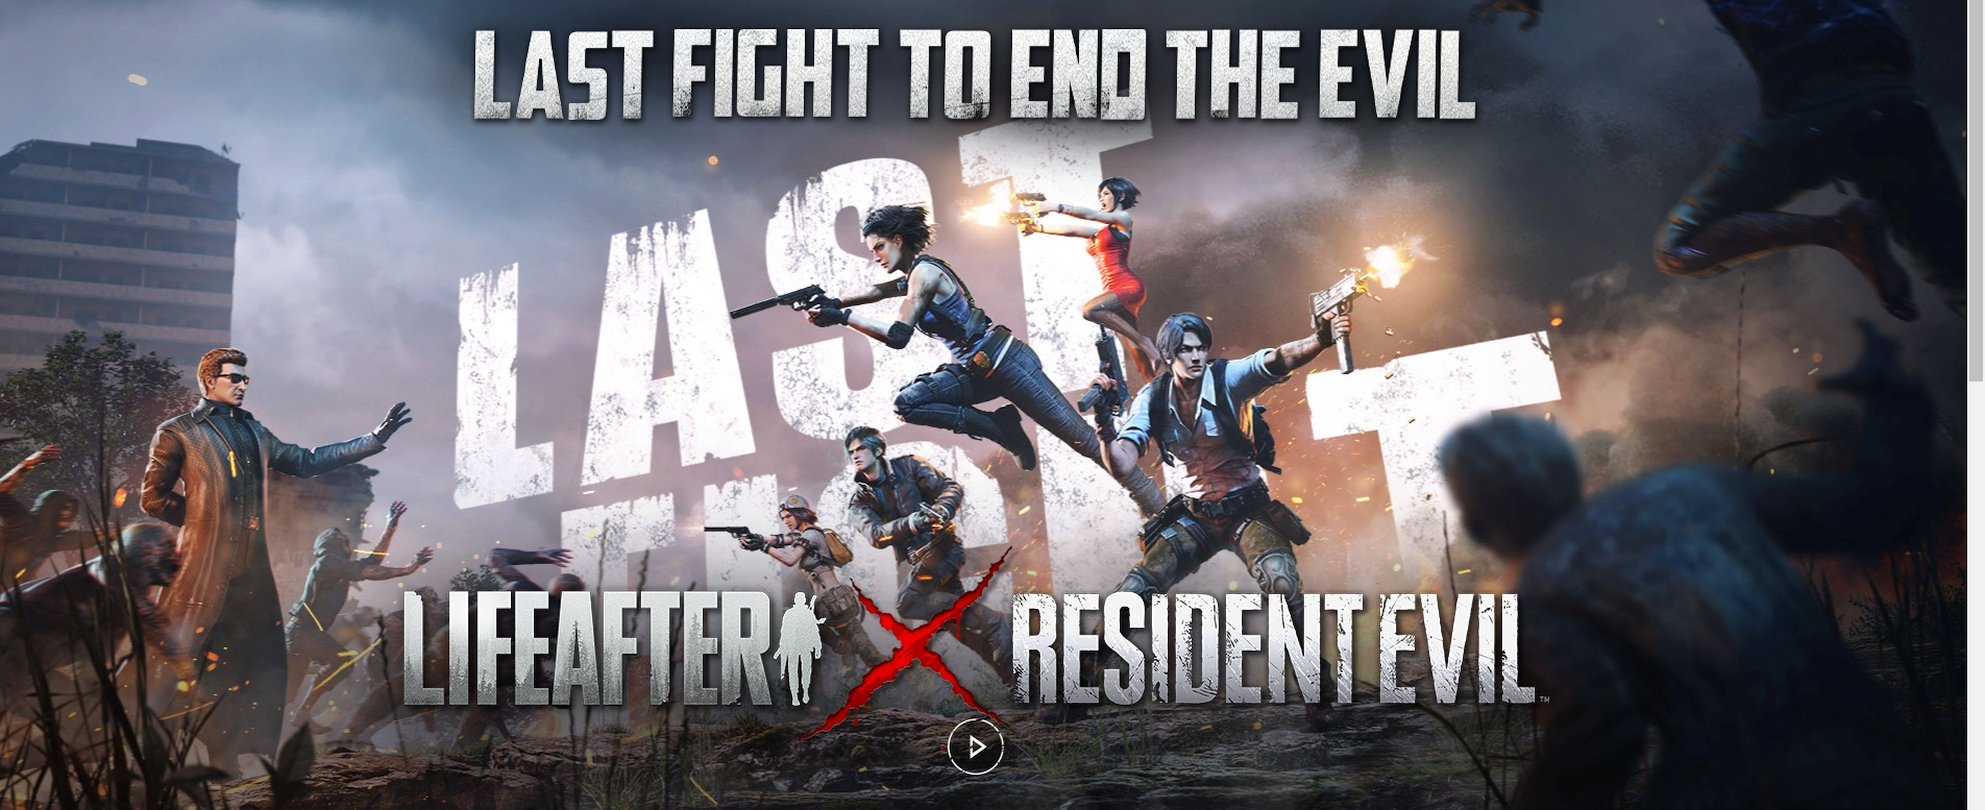 Second LifeAfter And Resident Evil Crossover Event Announced For December 3